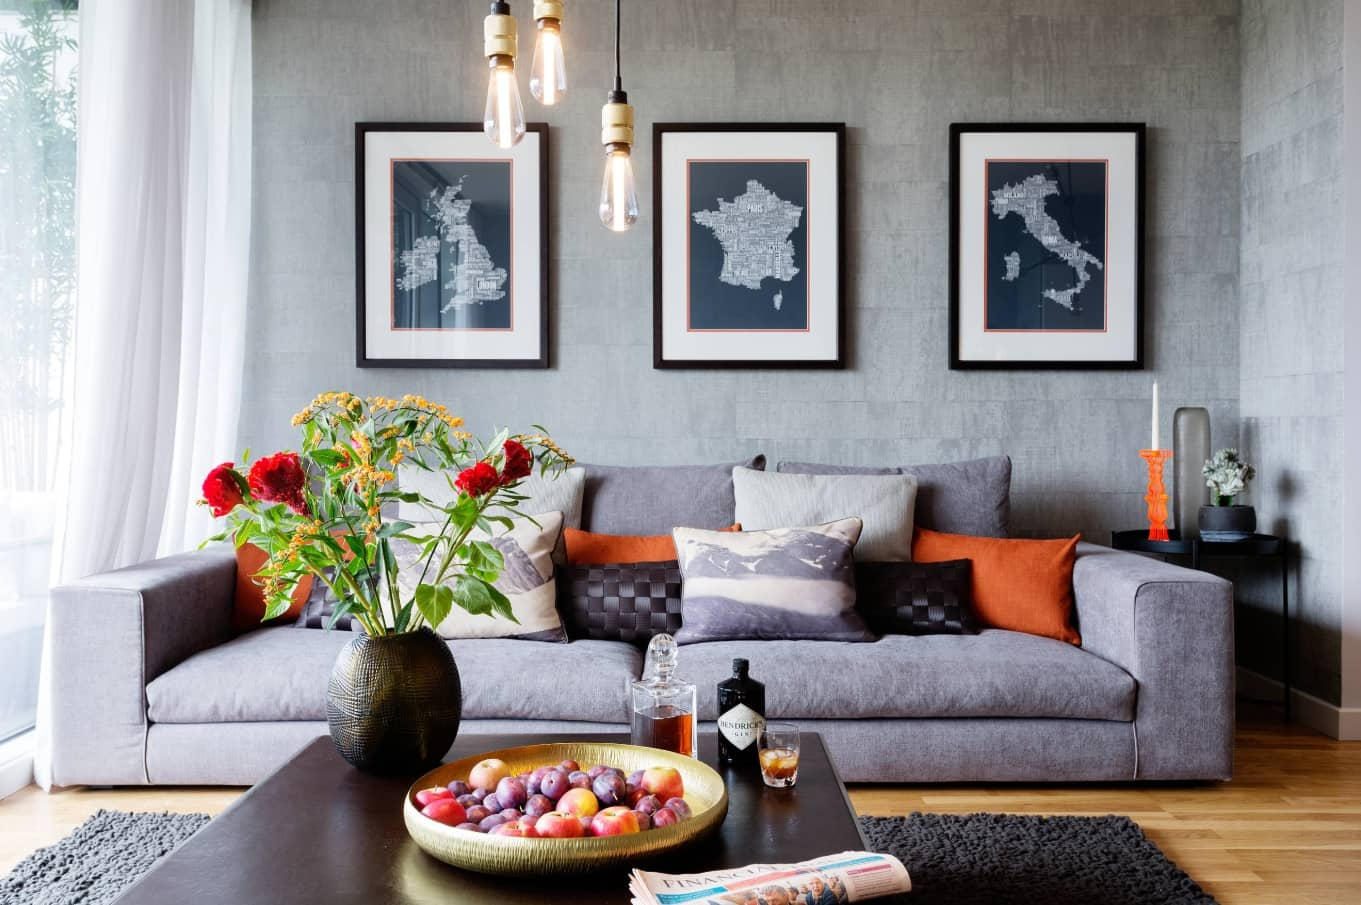 Great decorated modern living room with pendant lights, faux concrete painted walls and pictures with European countries